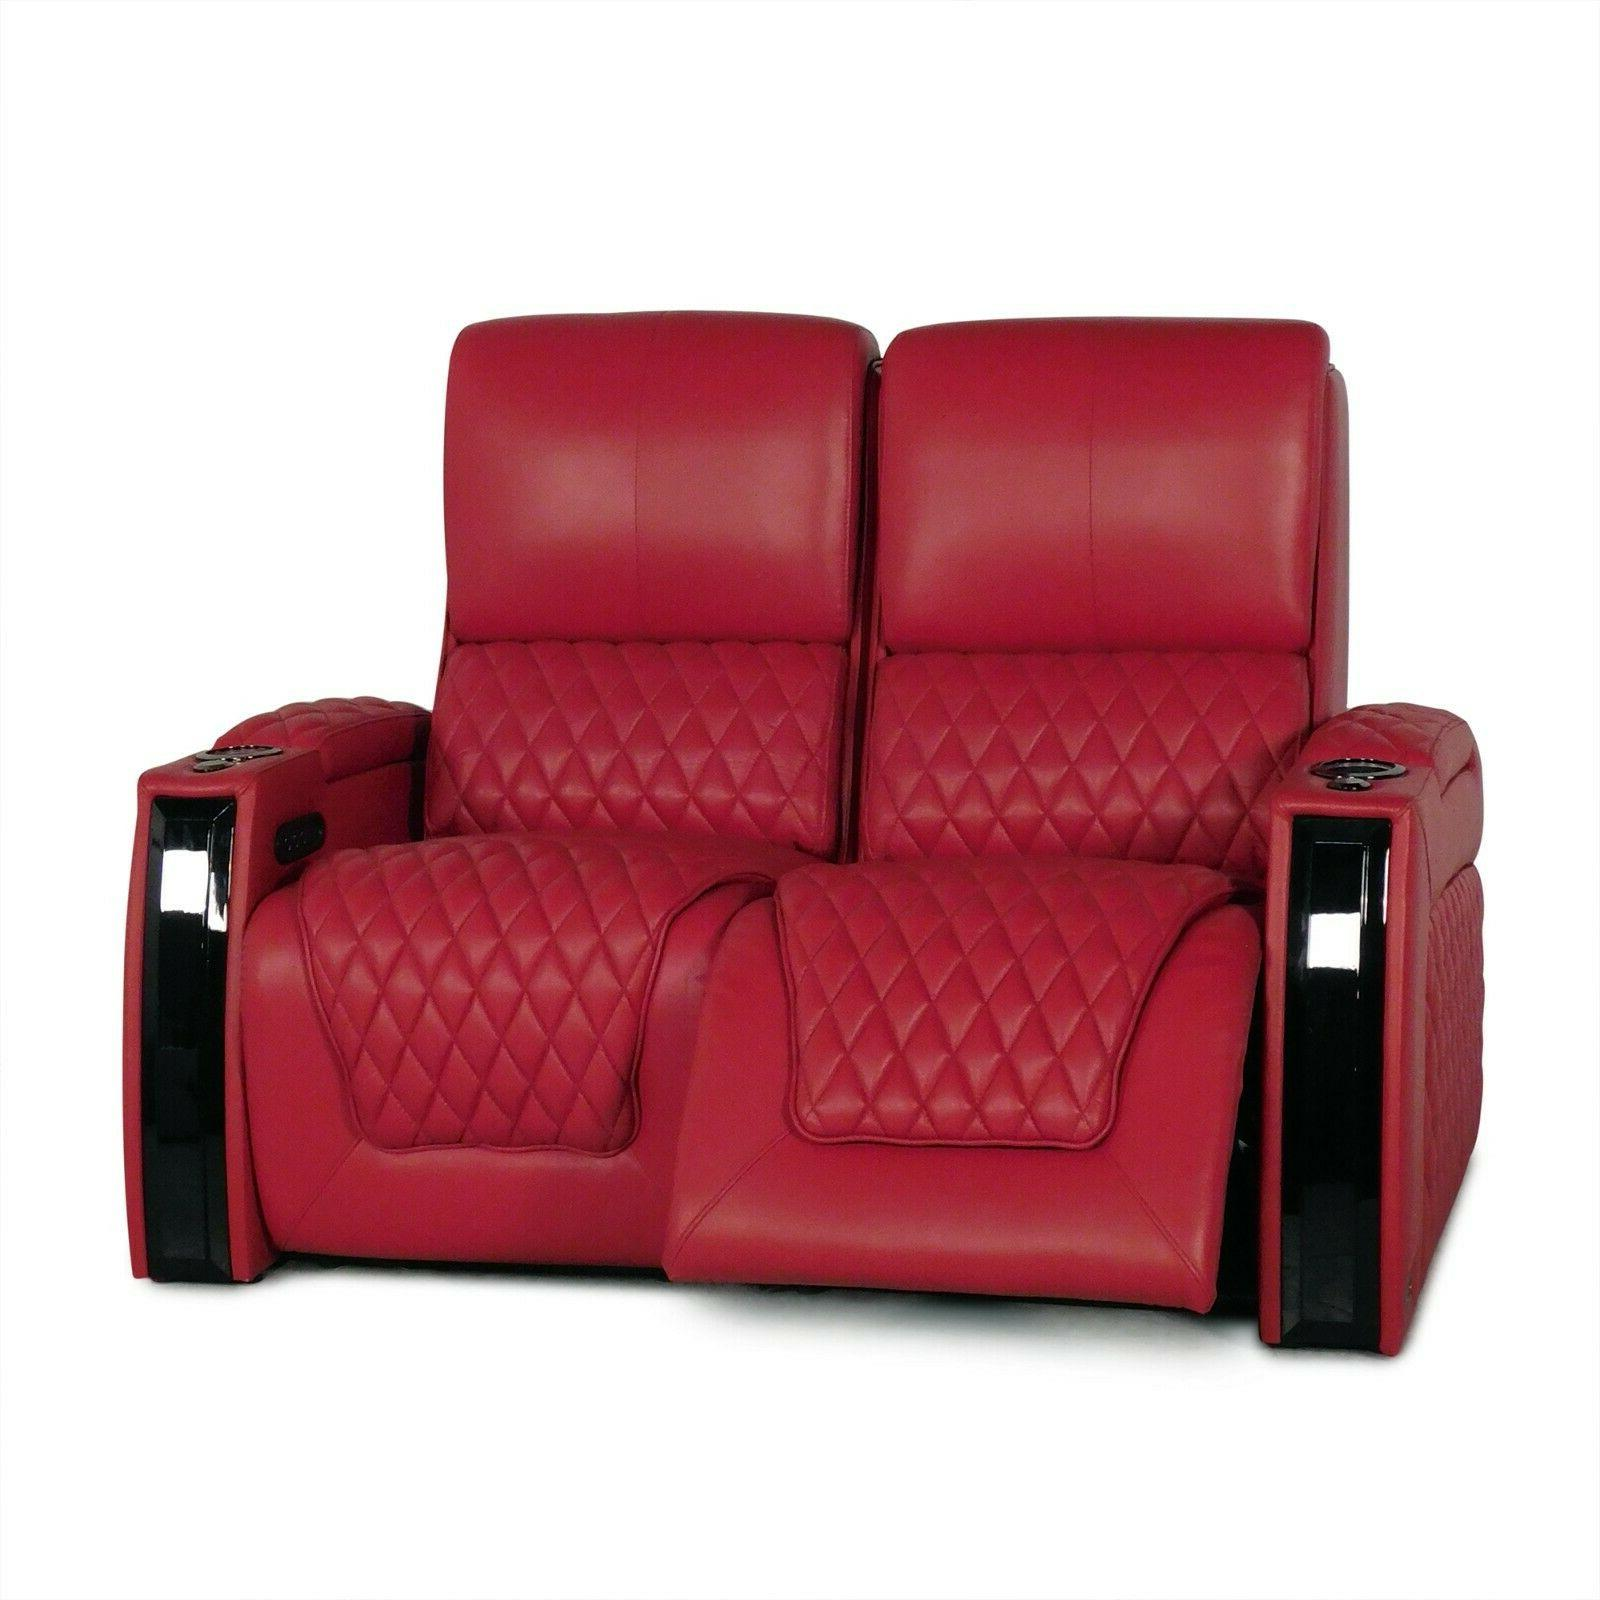 Seatcraft Red Home Seating Chairs Loveseat